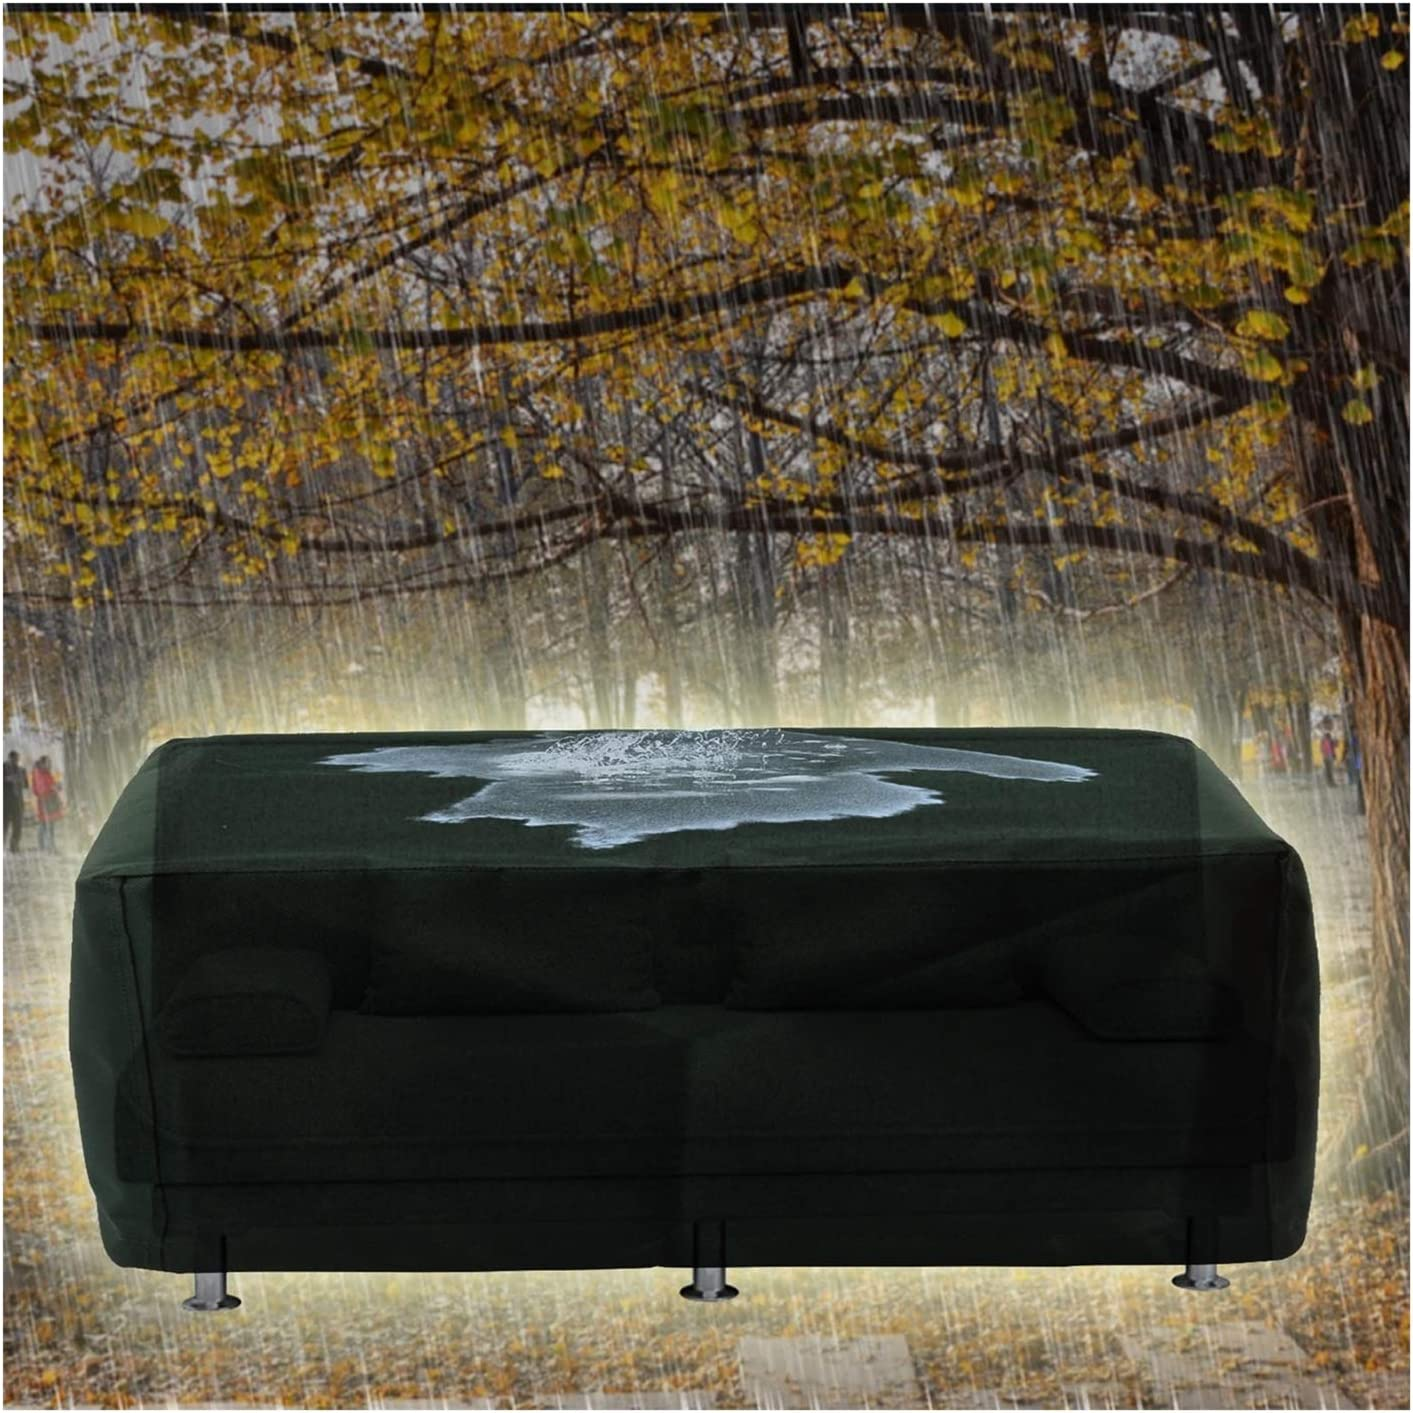 YJFENG Rattan Furniture Import Covers Dust-Proof Cover New item Waterproof Tar